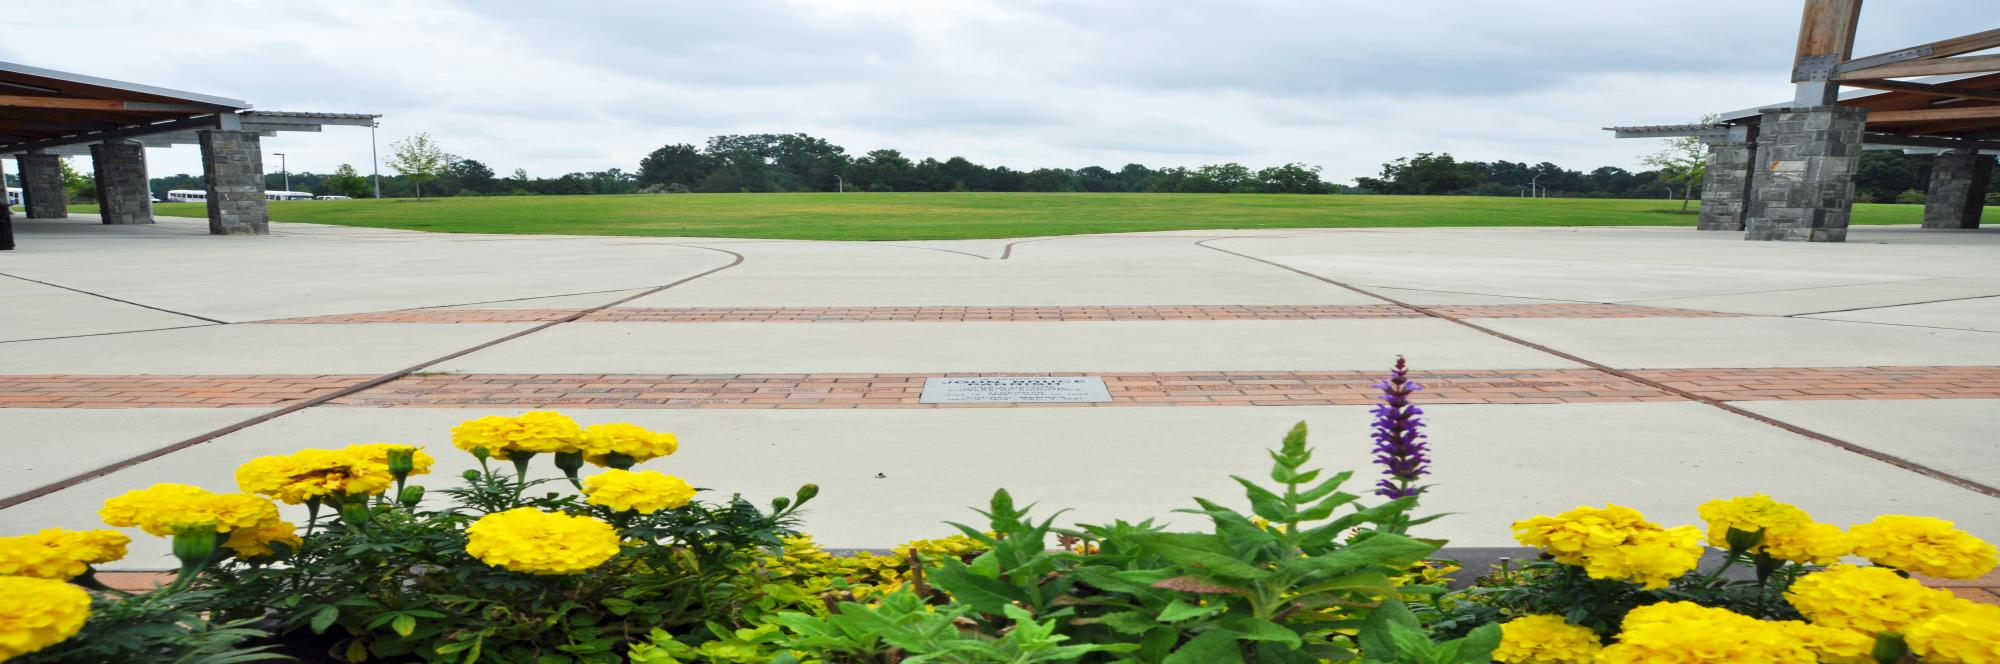 Knightdale Station Park Brick Pavers Picture